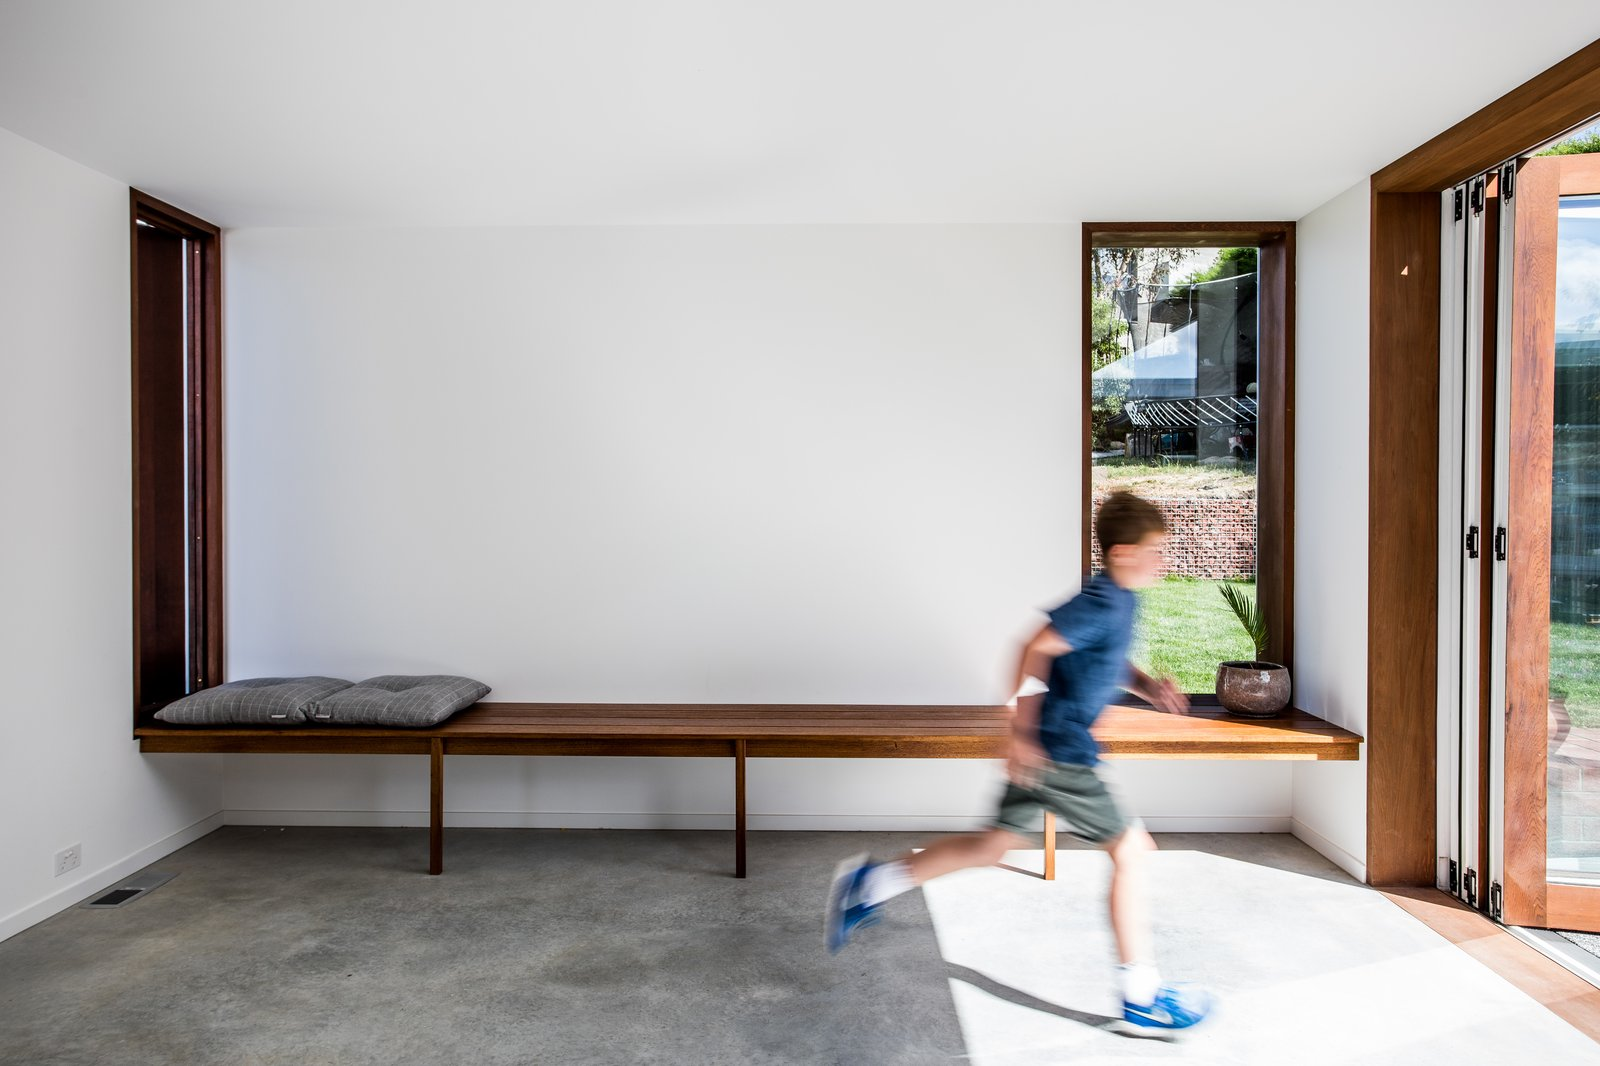 The homeowners have flexibility in how they can use the new living space. Right now, it can be a play room; years from now, an office or second living room.